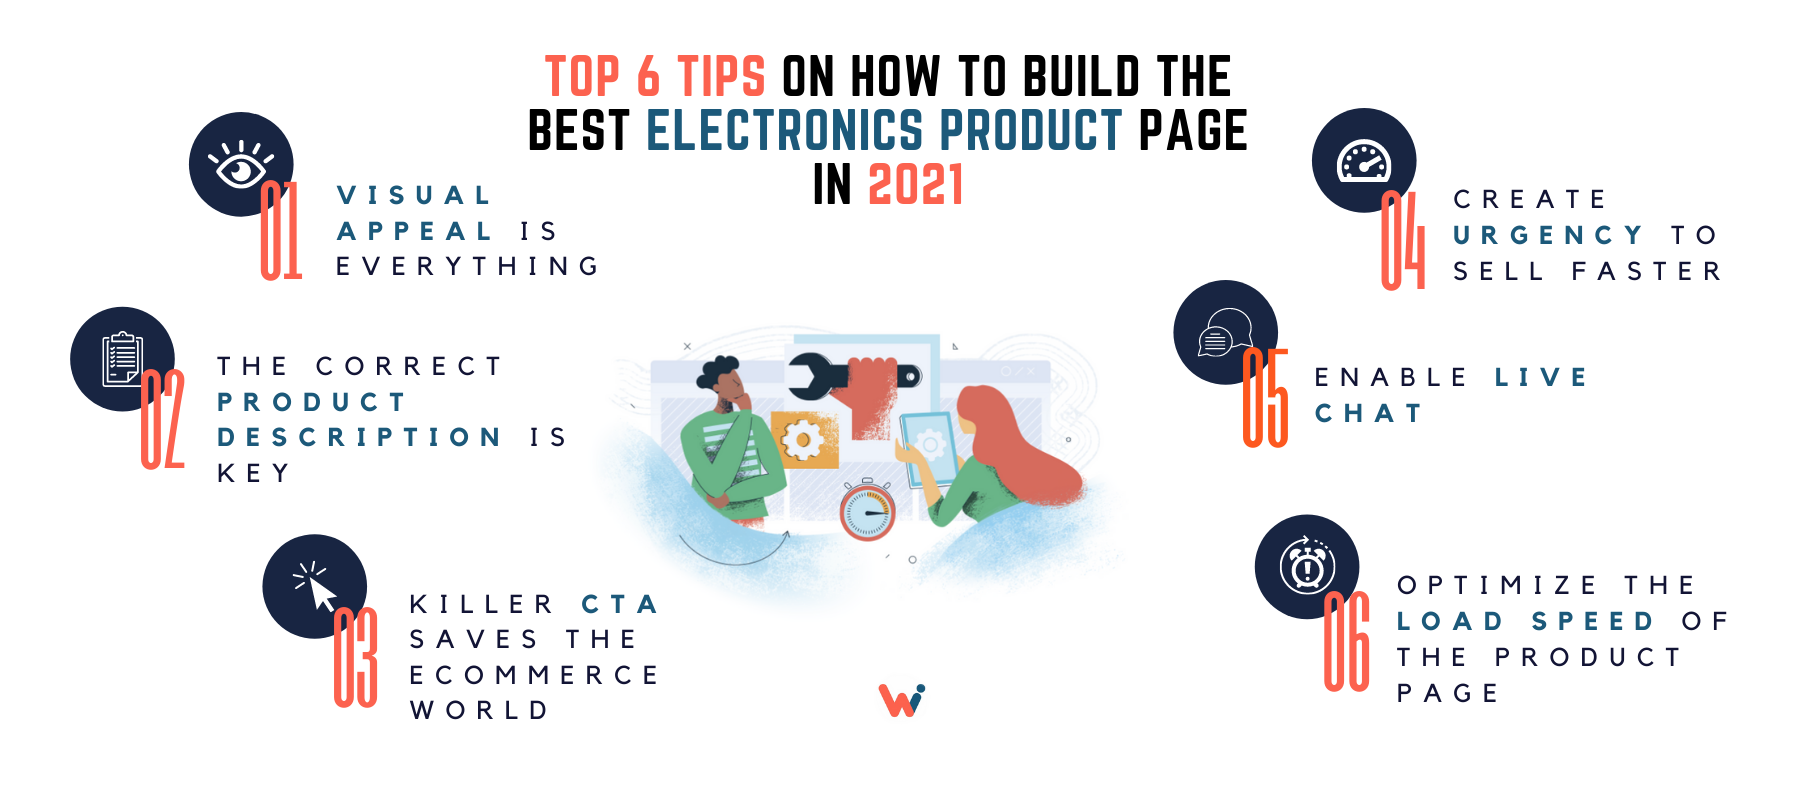 Top 6 tips on how to build the best electronics product page in 2021